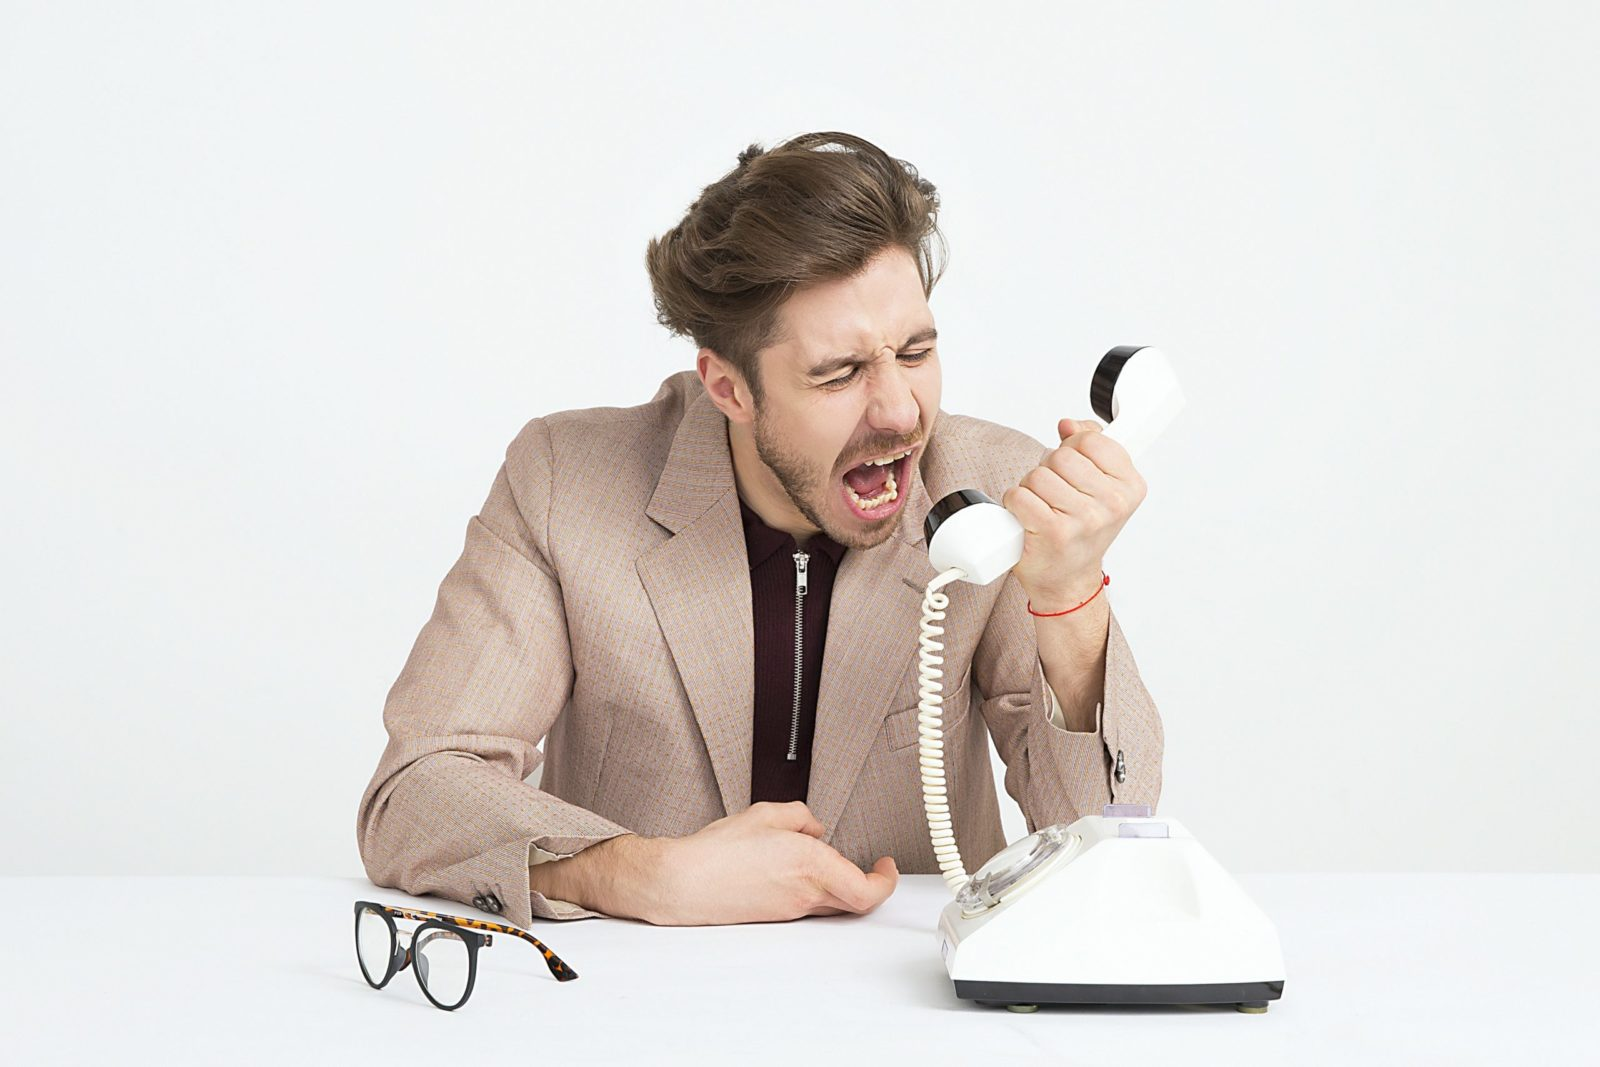 man wearing brown suit jacket mocking on white telephone 1587014 scaled